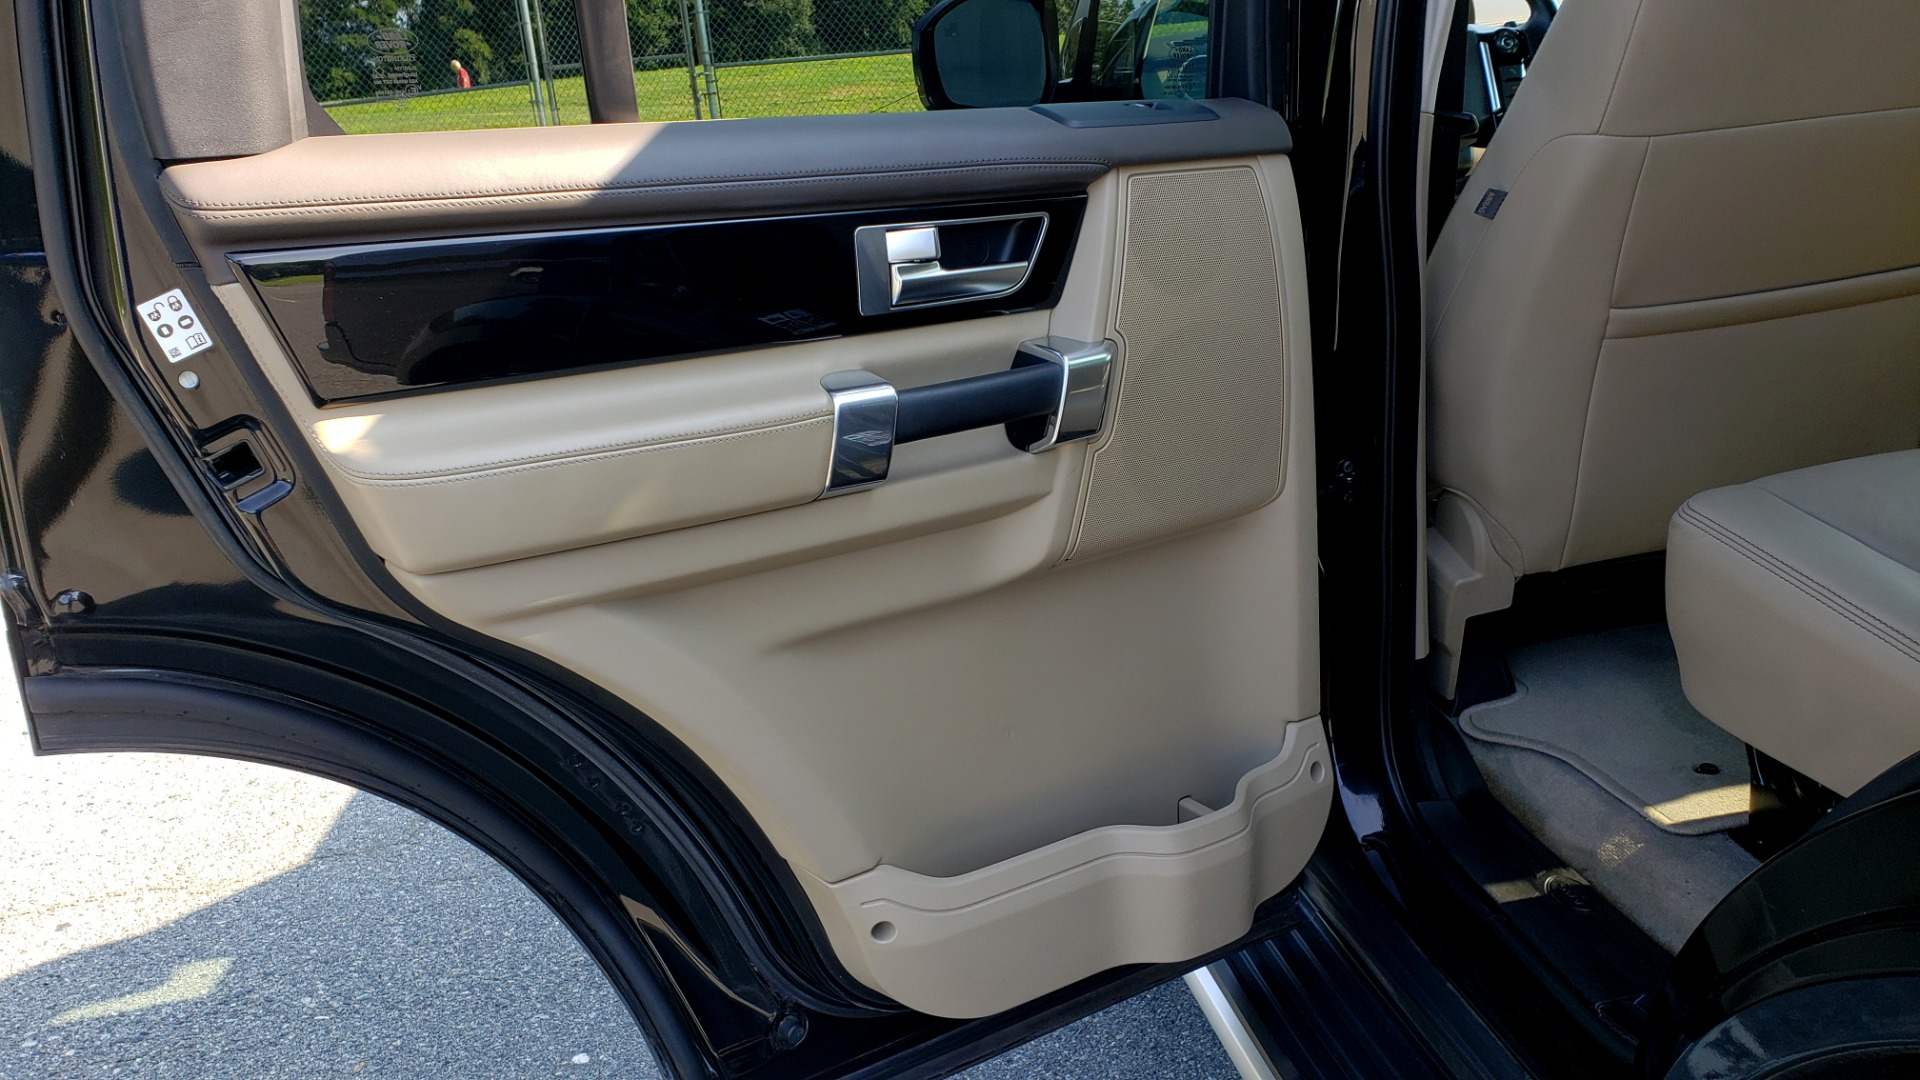 Used 2016 Land Rover LR4 HSE LUX LANDMARK EDITION / NAV / HTD STS / SUNROOF / REARVIEW for sale Sold at Formula Imports in Charlotte NC 28227 60